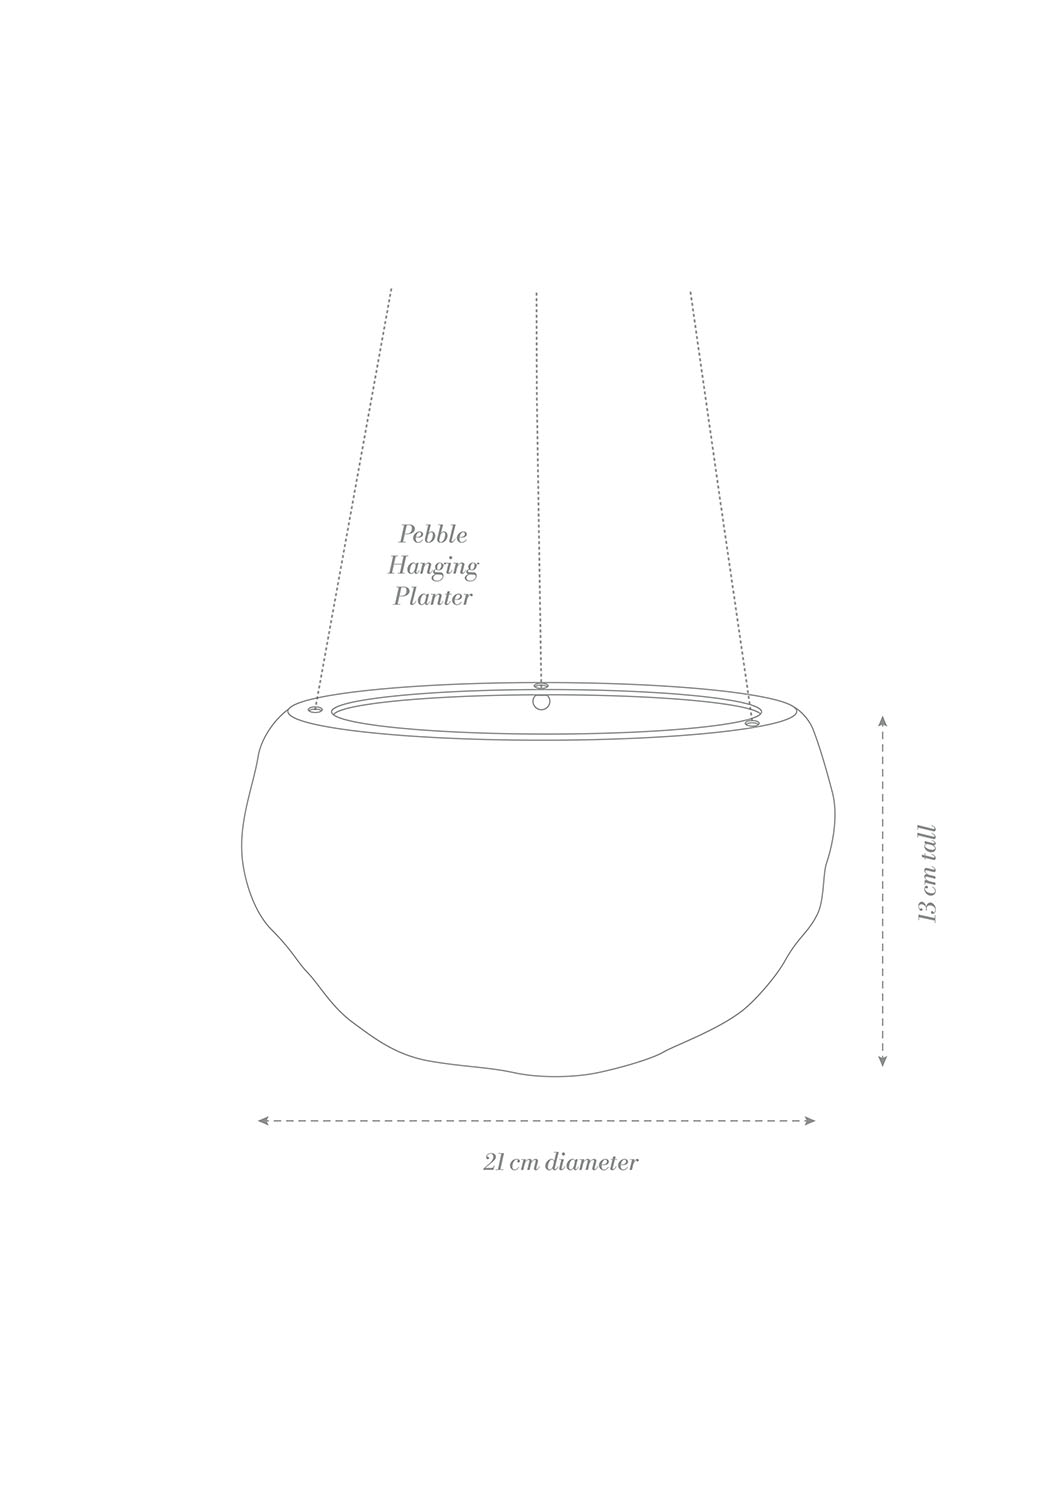 Decorative Pebble Hanging Planter Product Diagram